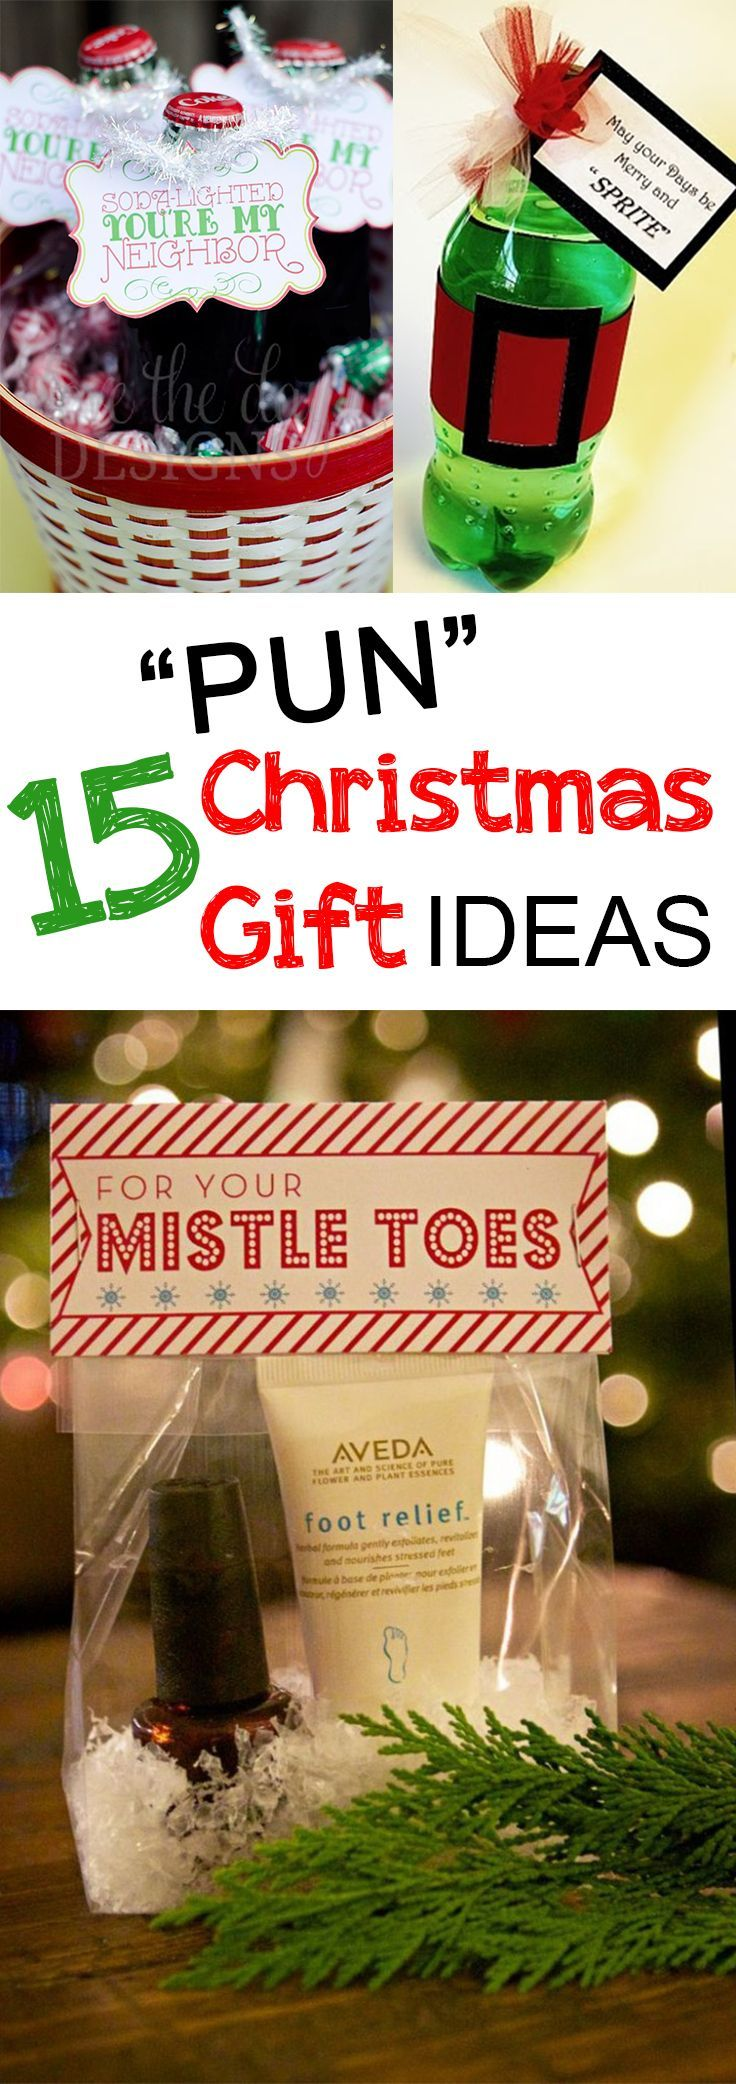 15 Pun Christmas Gift Ideas